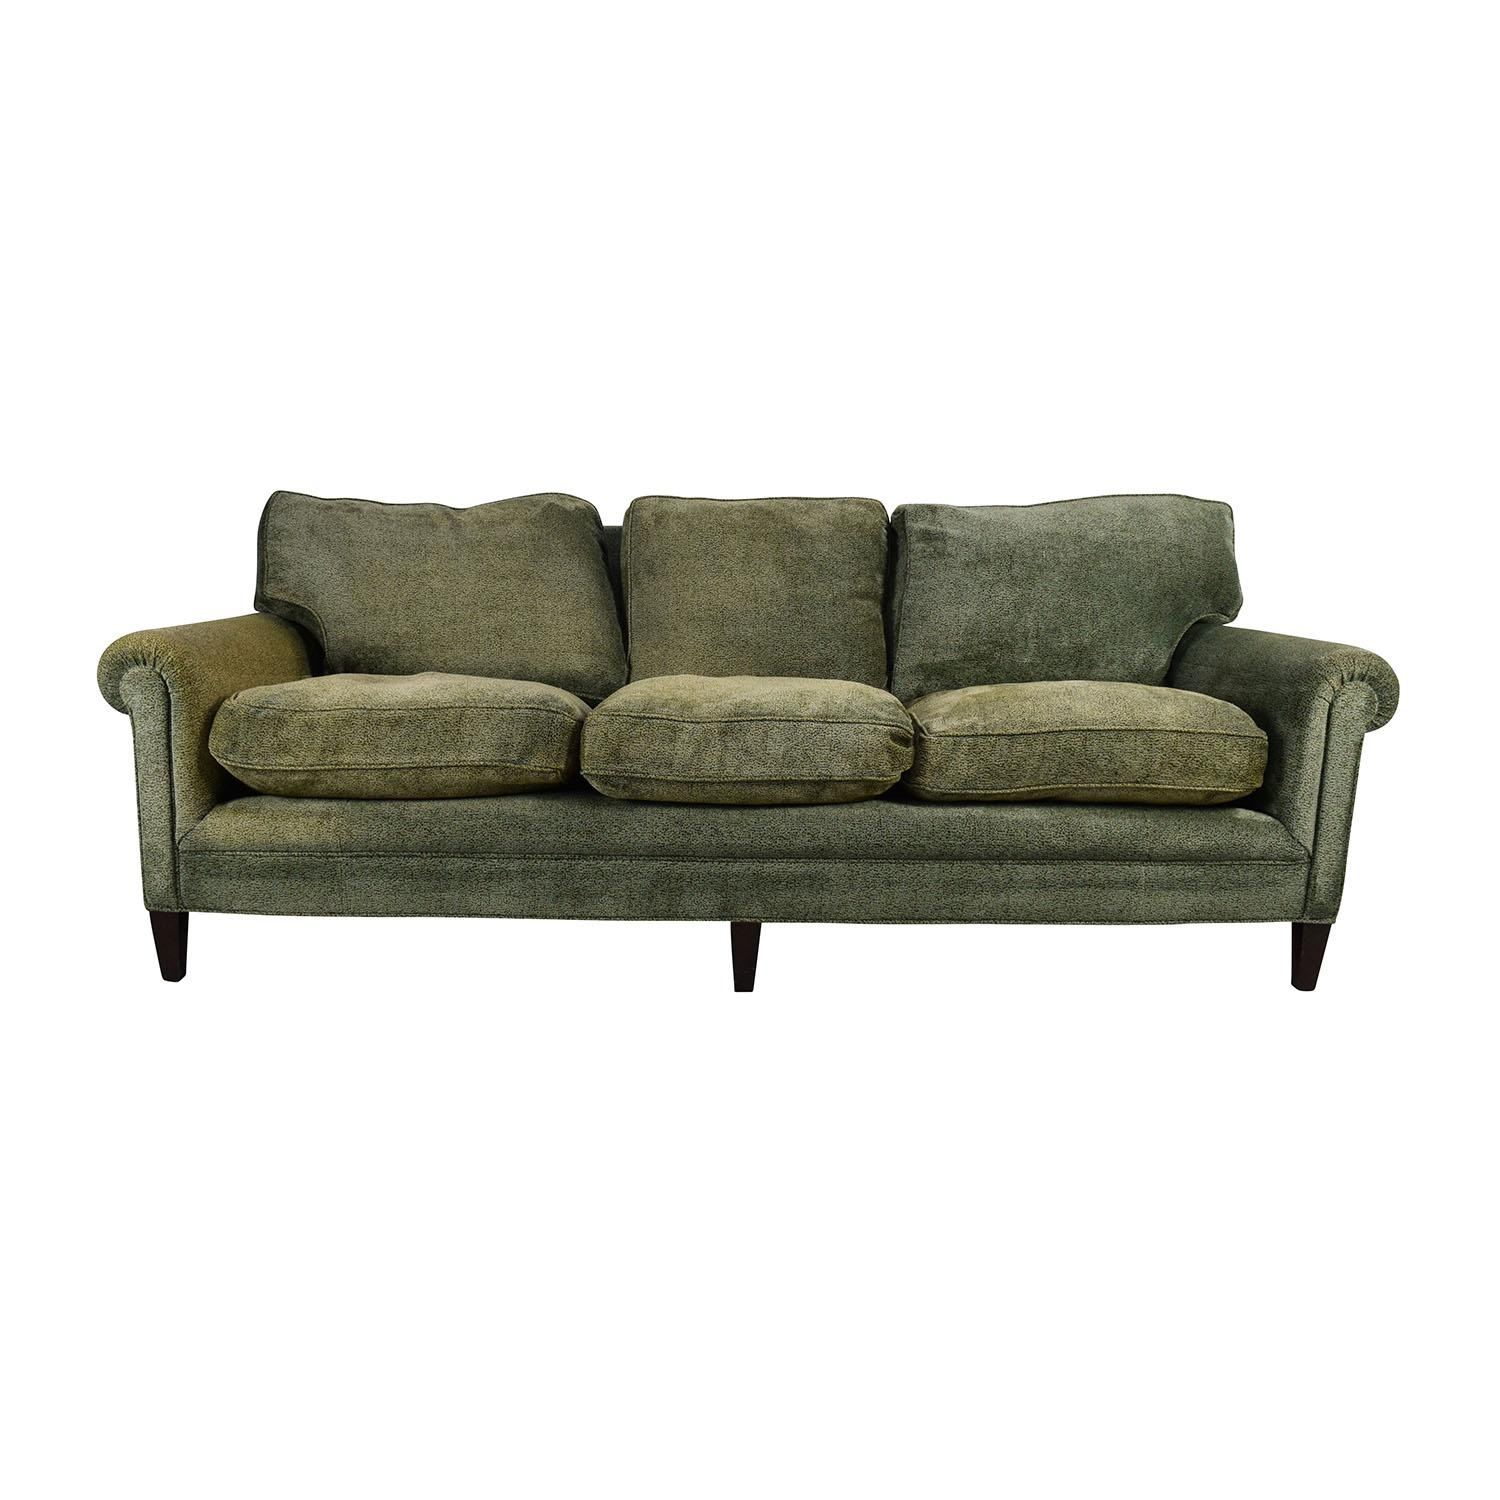 84% Off - Thomas Alexander Thomas Alexander Classic Sofa / Sofas with regard to Classic Sofas For Sale